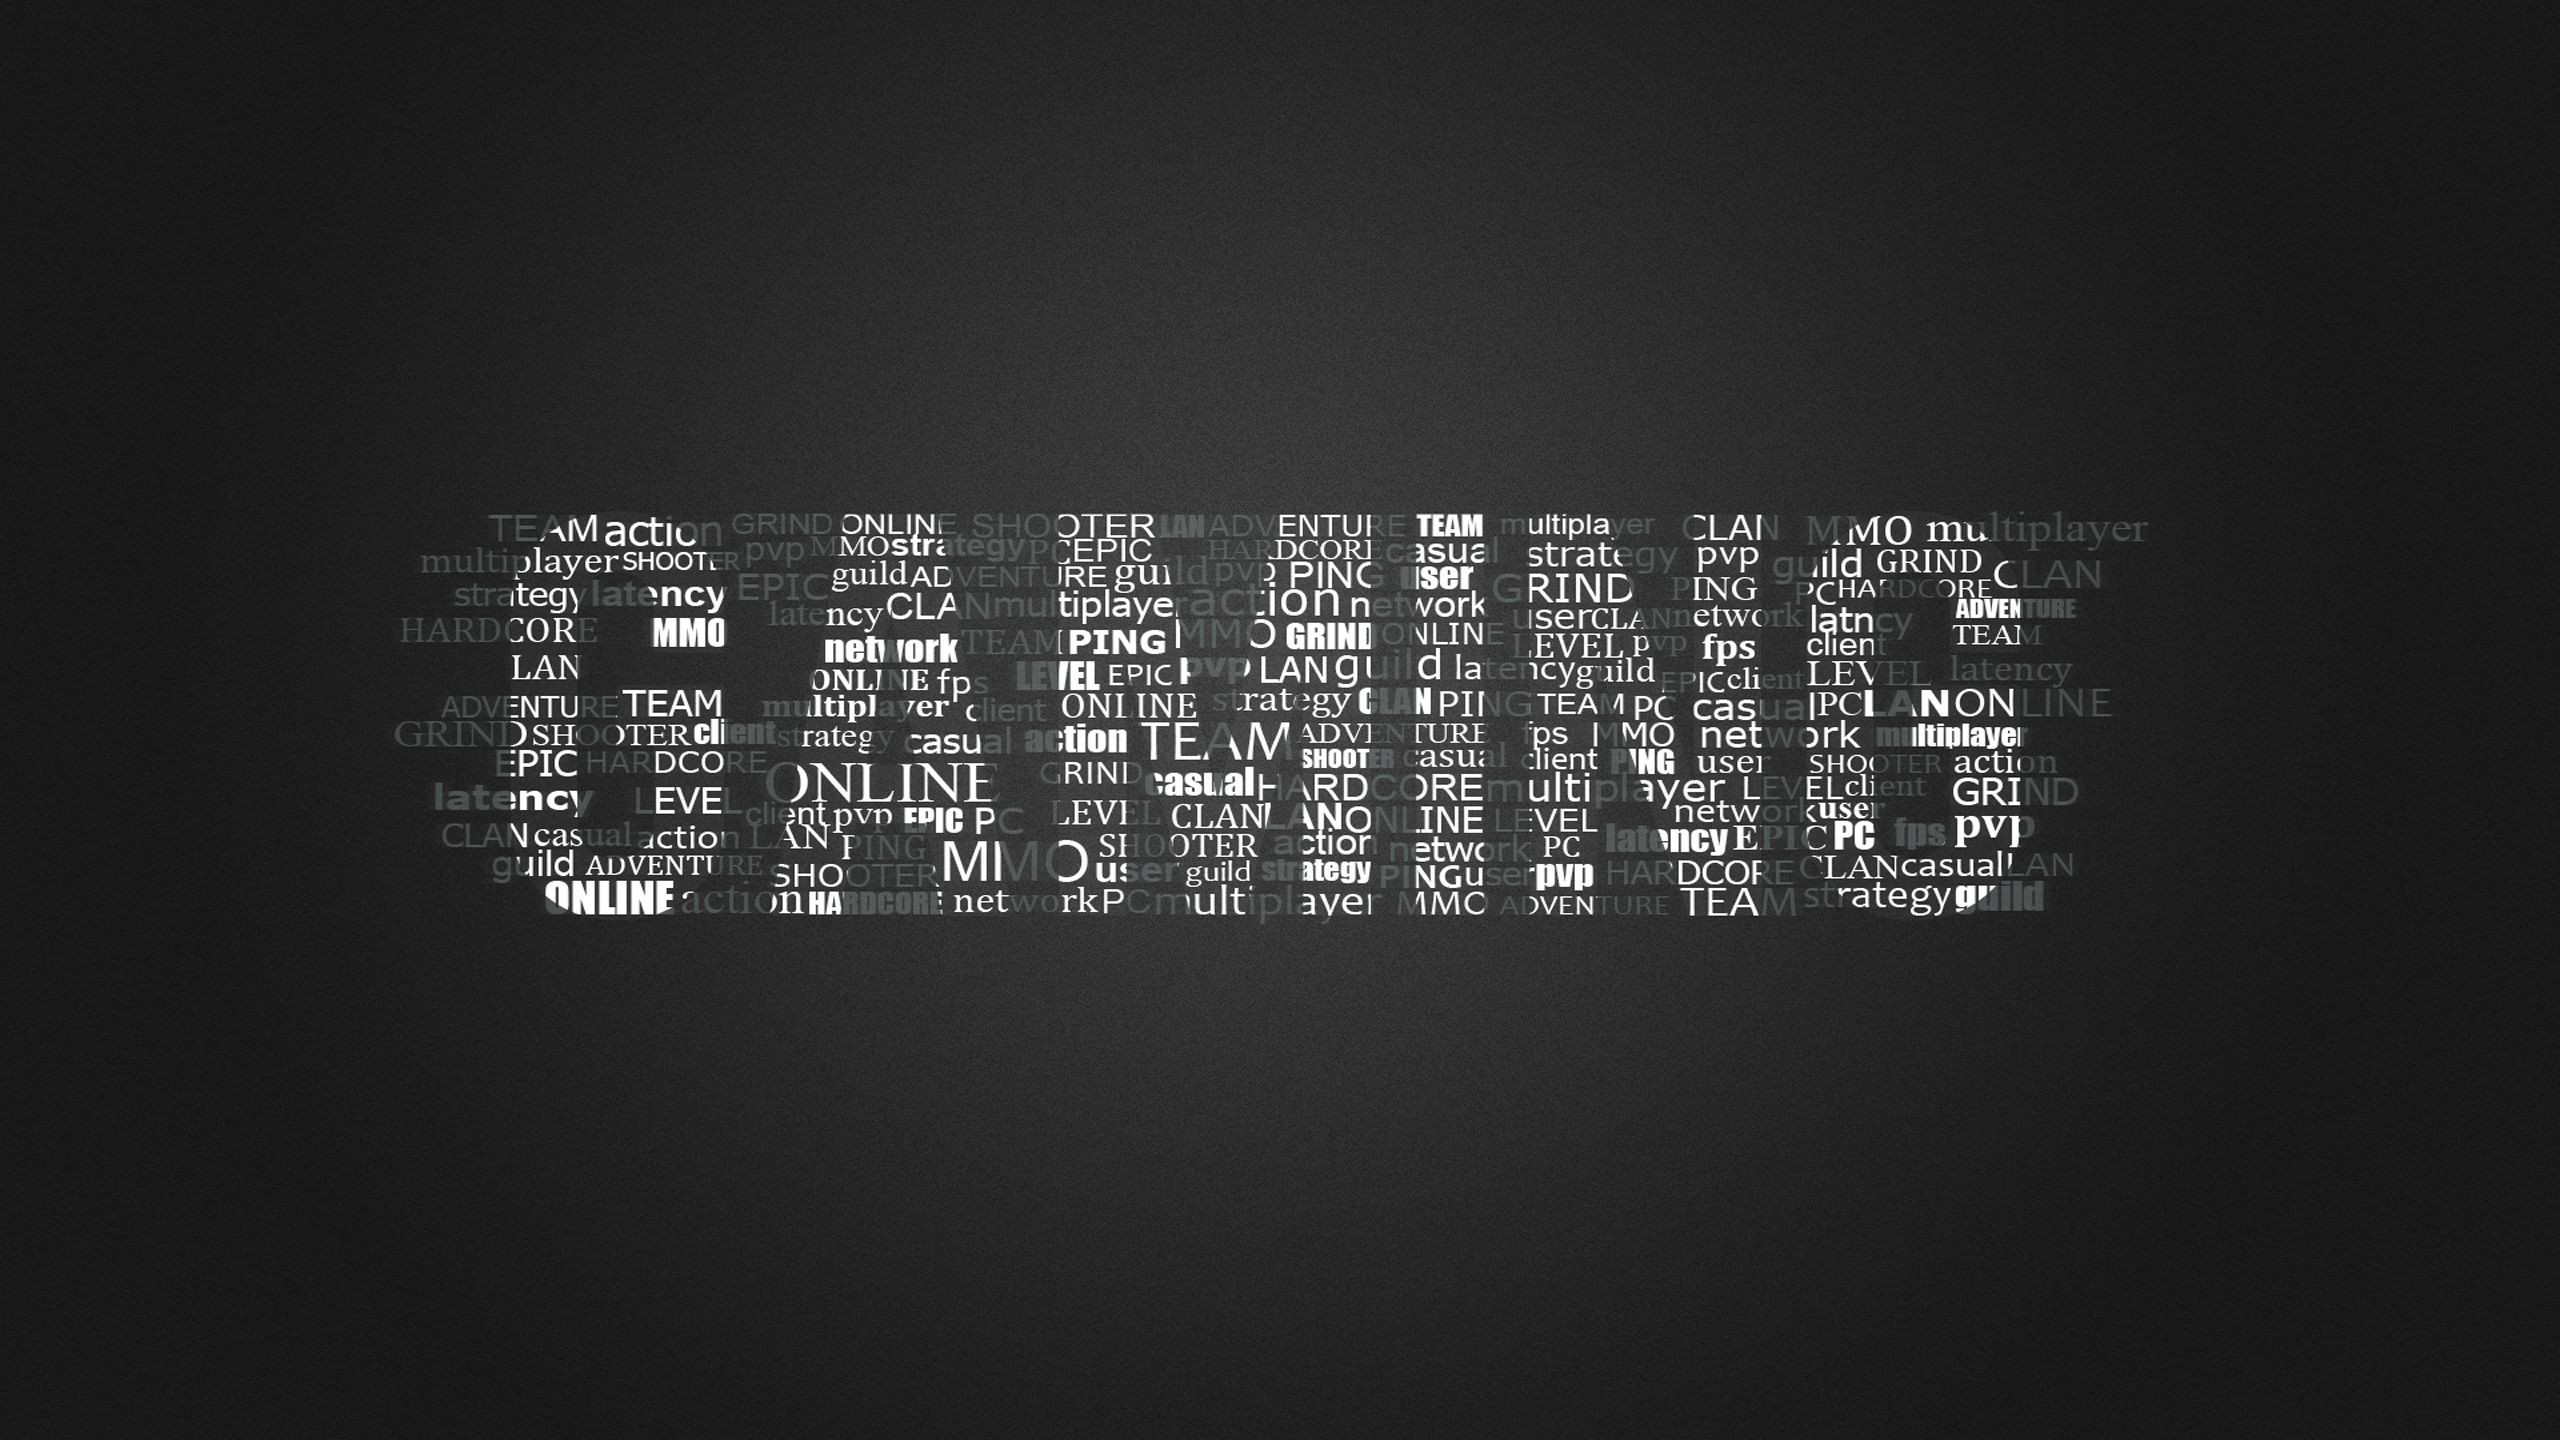 gaming wallpapers 2560 x 1440 76 images